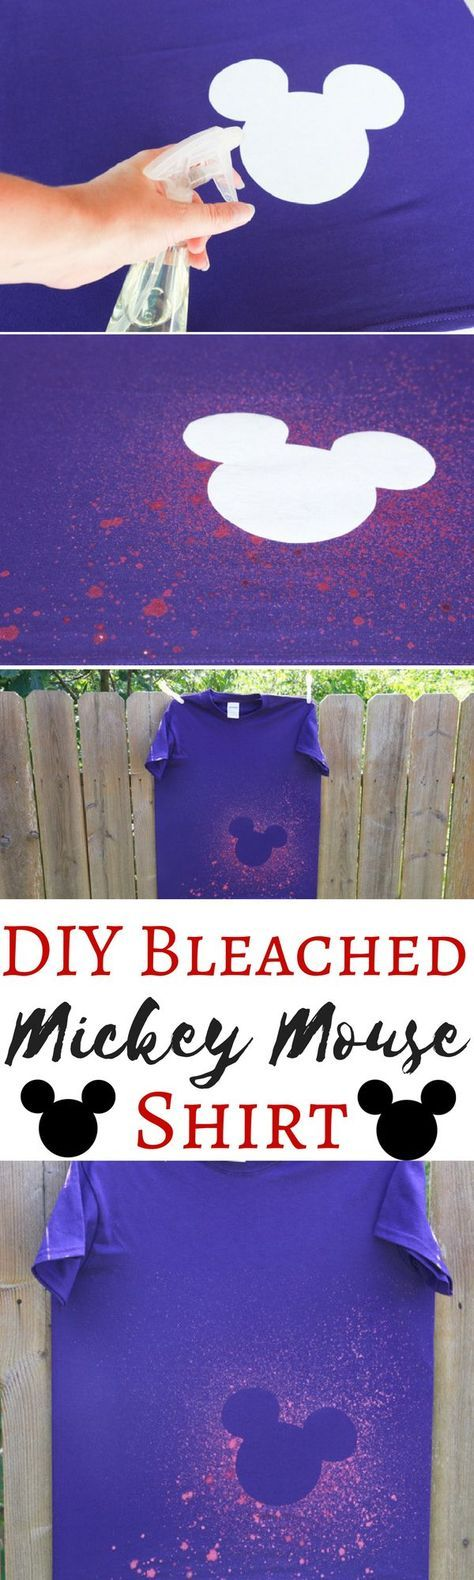 Skip the overpriced shirts at Disney World and make your own before you leave. This DIY Bleached Mickey Mouse shirt turned out great! via /simplymommy/